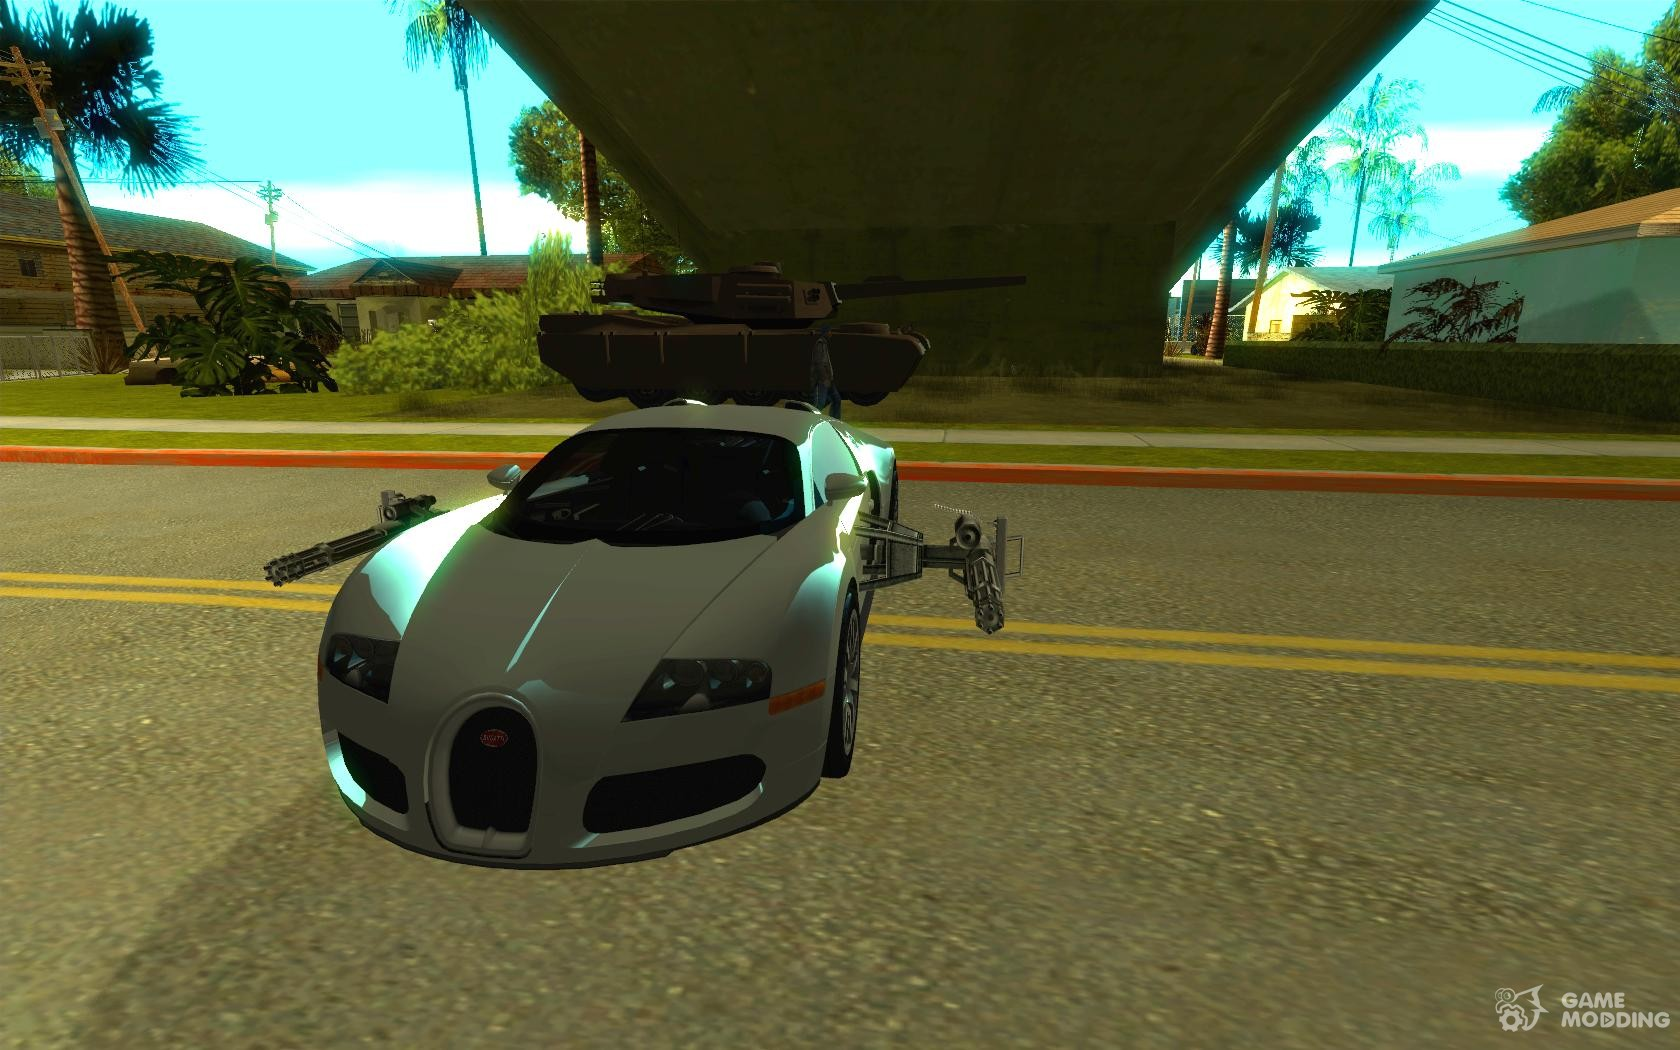 Elm v9 for gta sa (emergency light mod) para gta san andreas.